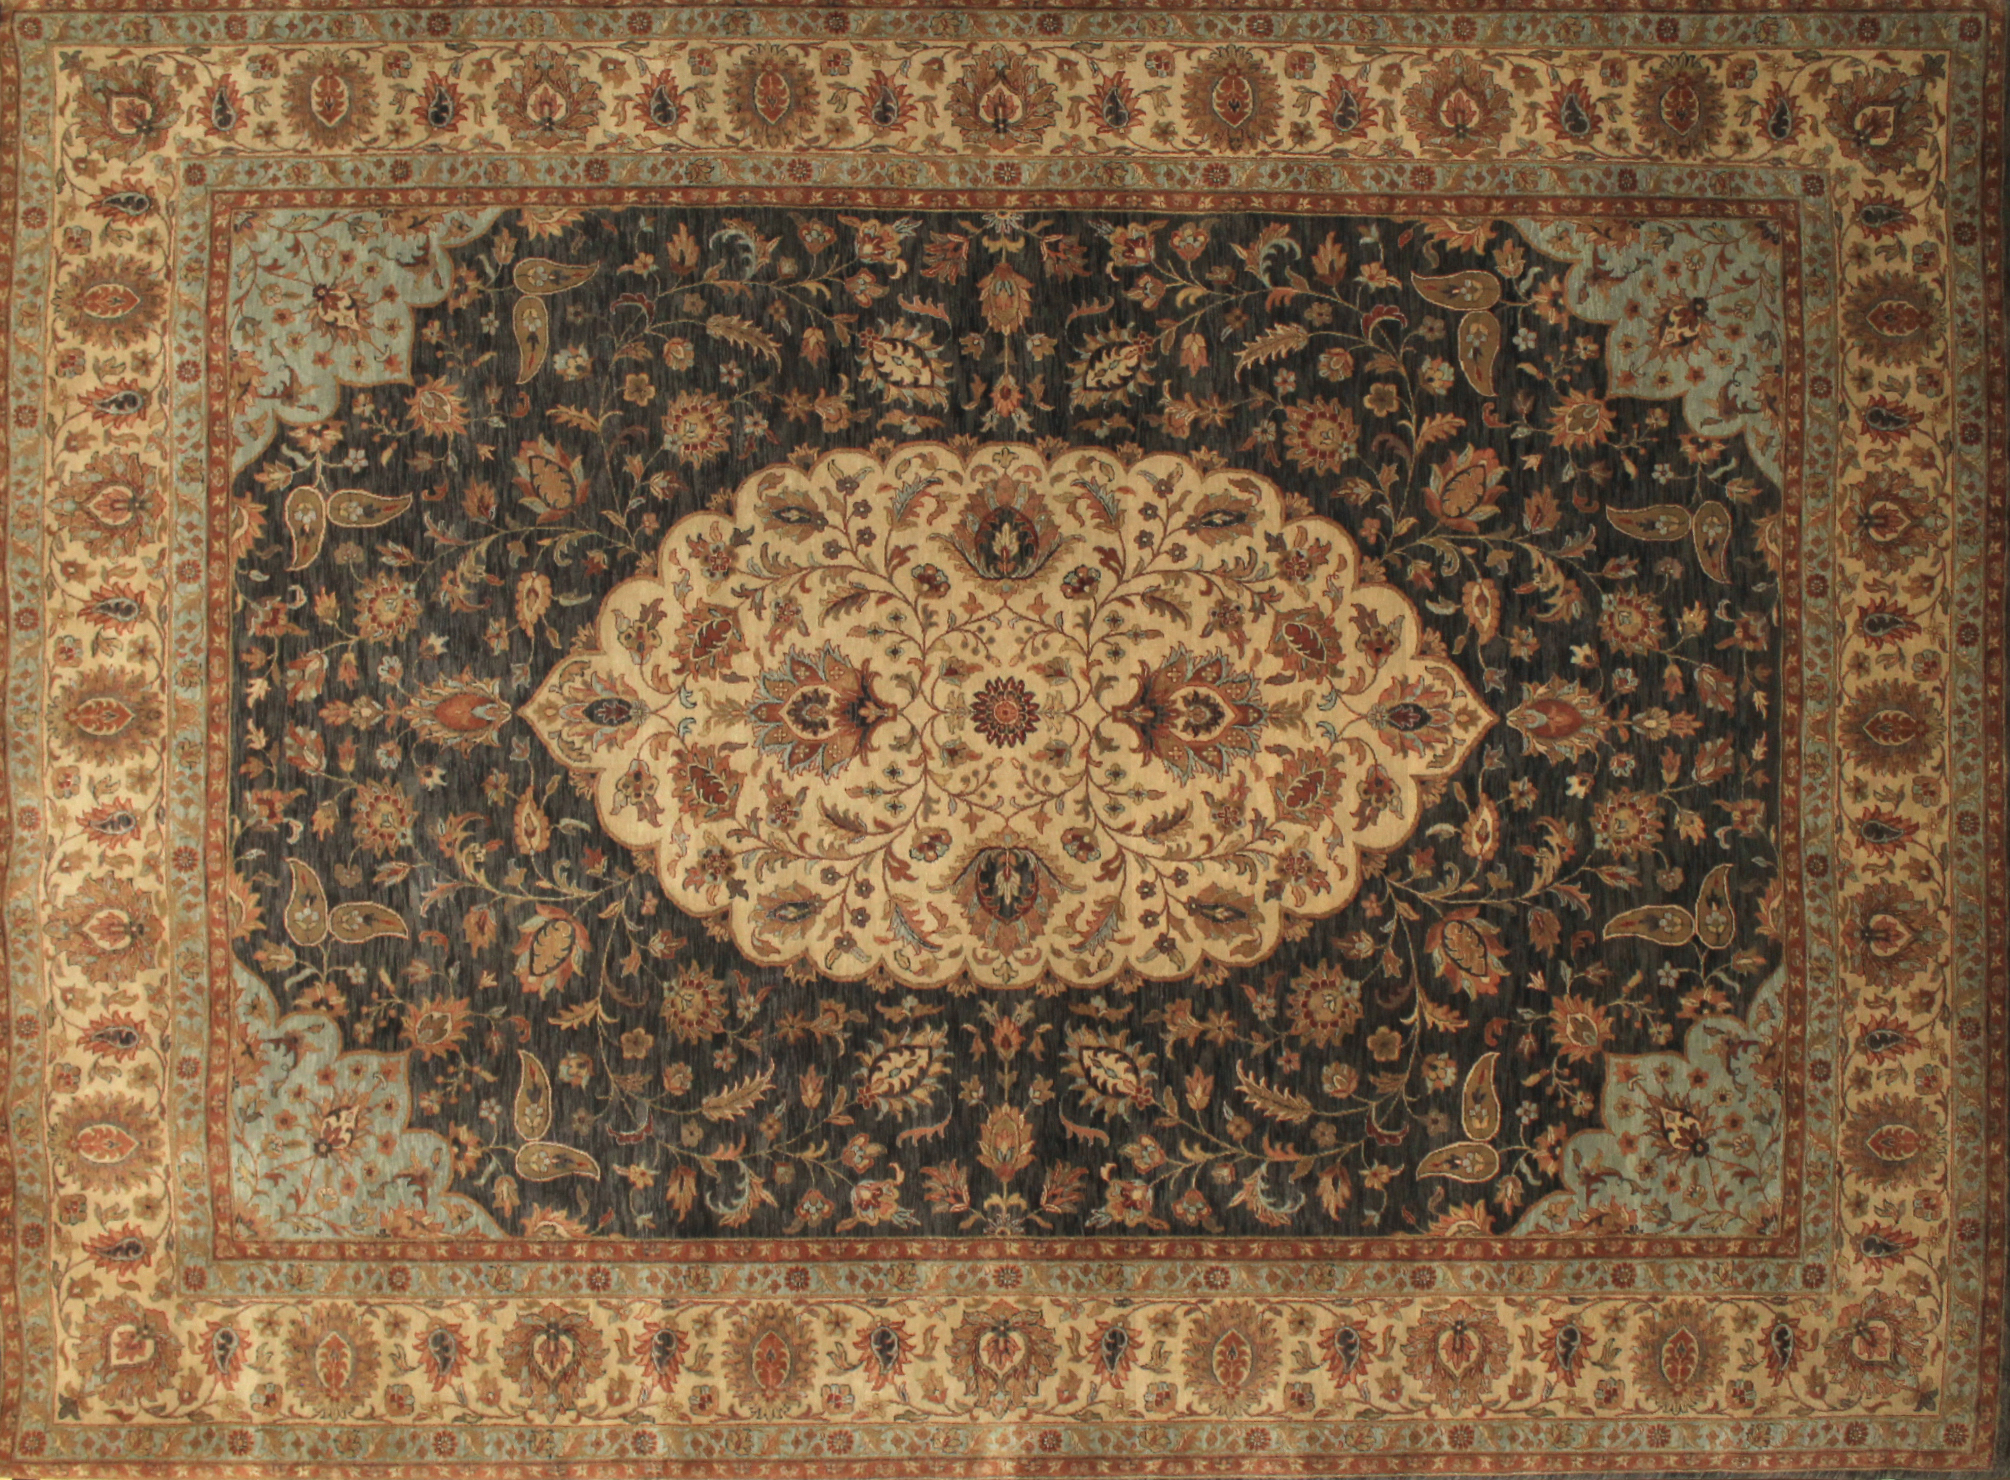 9x12 Traditional Hand Knotted Wool Area Rug - MR8455